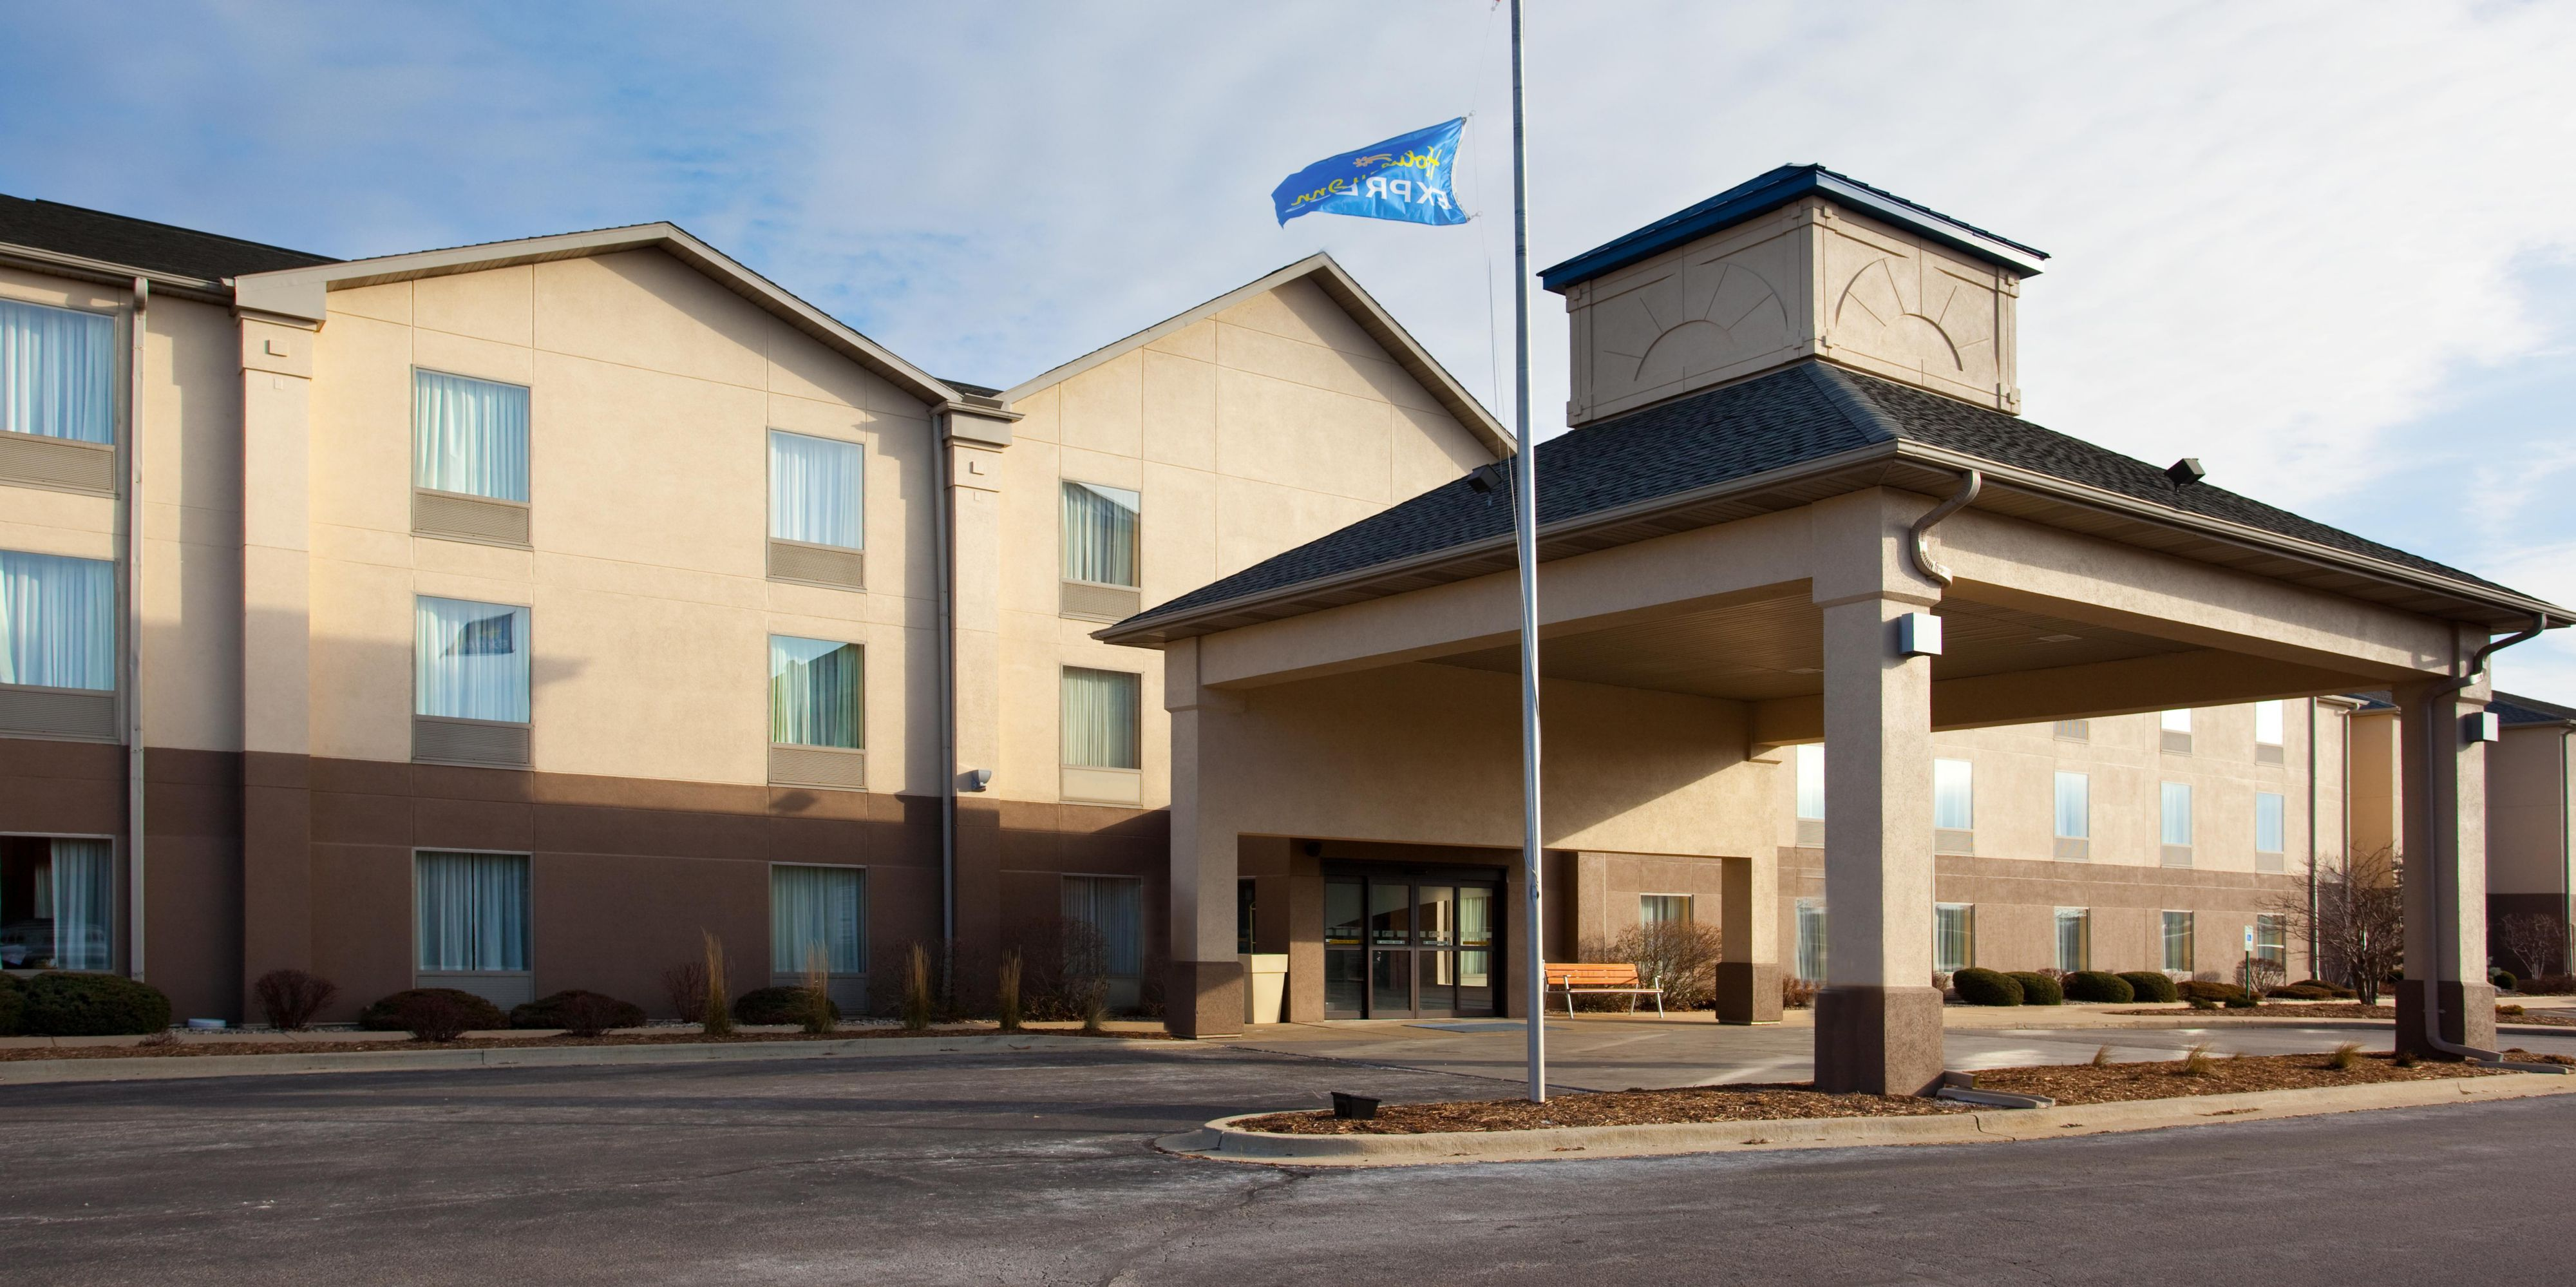 holiday inn express suites bourbonnais kankakee bradley map driving directions parking options for holiday inn express suites bourbonnais kankakee bradley in bourbonnais suites bourbonnais kankakee bradley